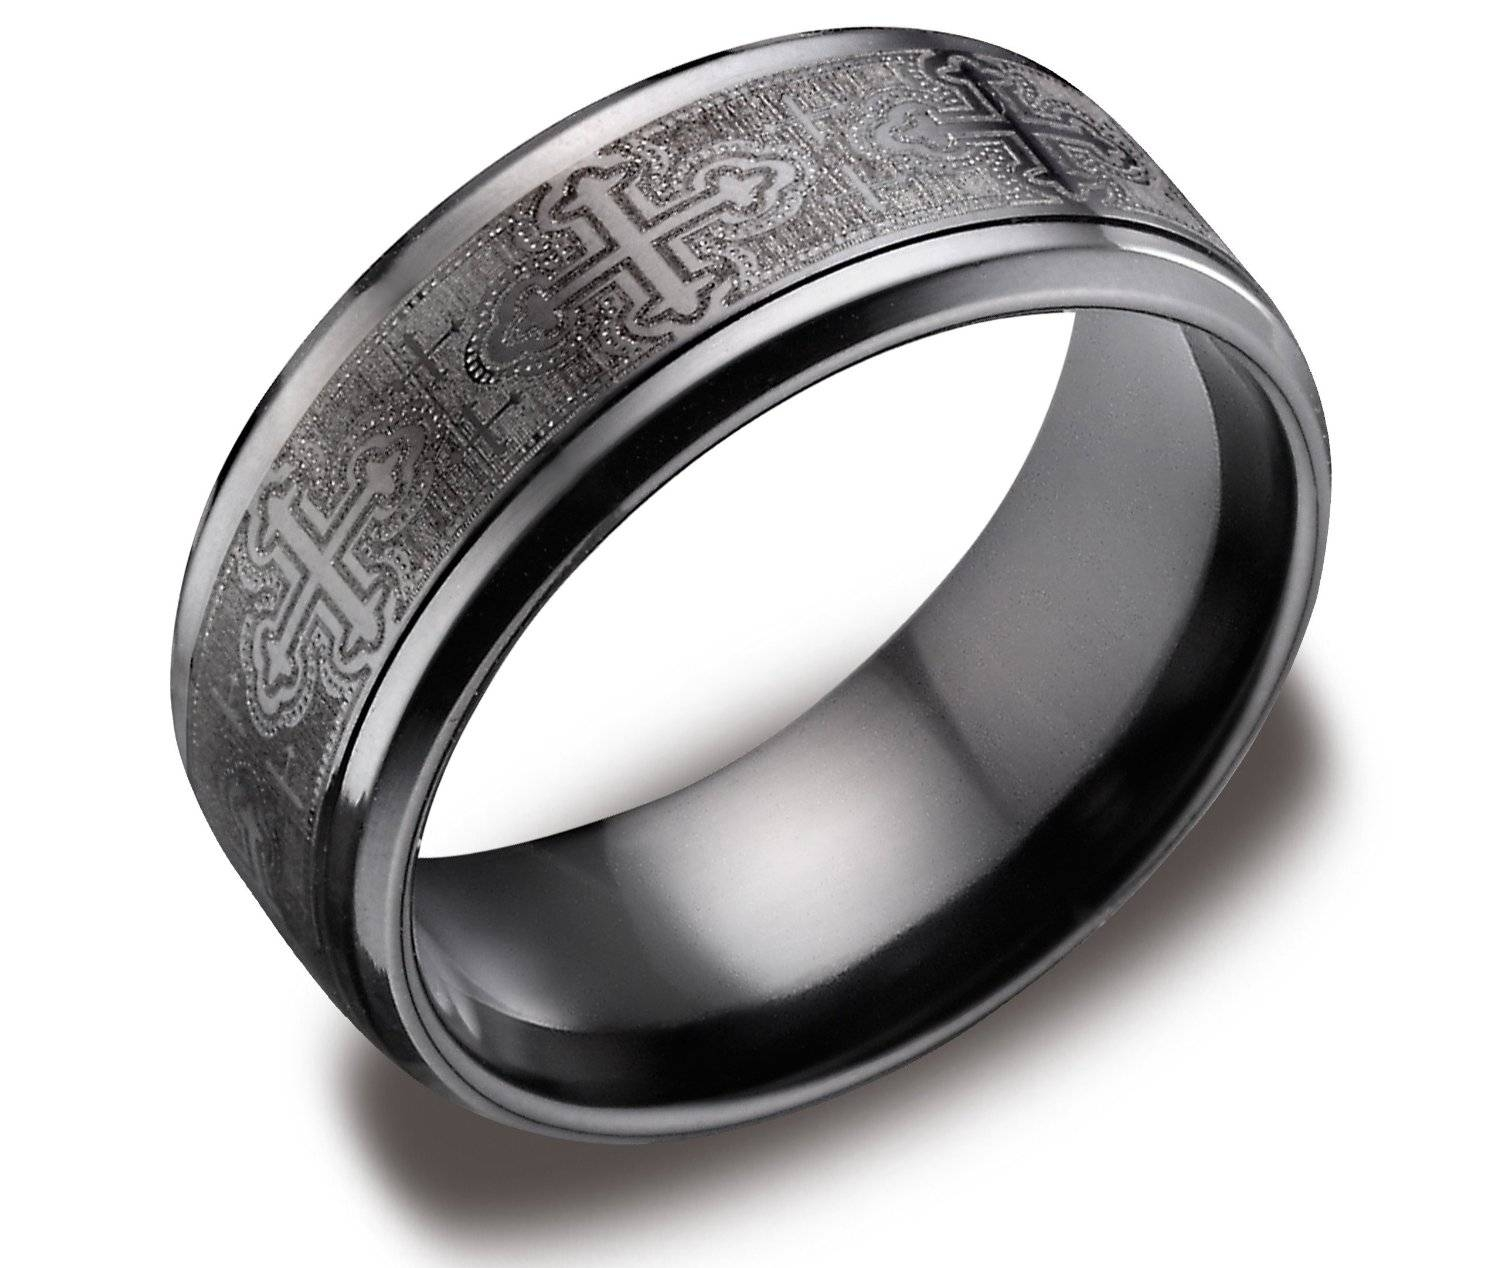 Mens Titanium Wedding Bands Are No Less Appealing Than Gold Regarding Men's Titanium Wedding Bands With Diamonds (View 8 of 15)